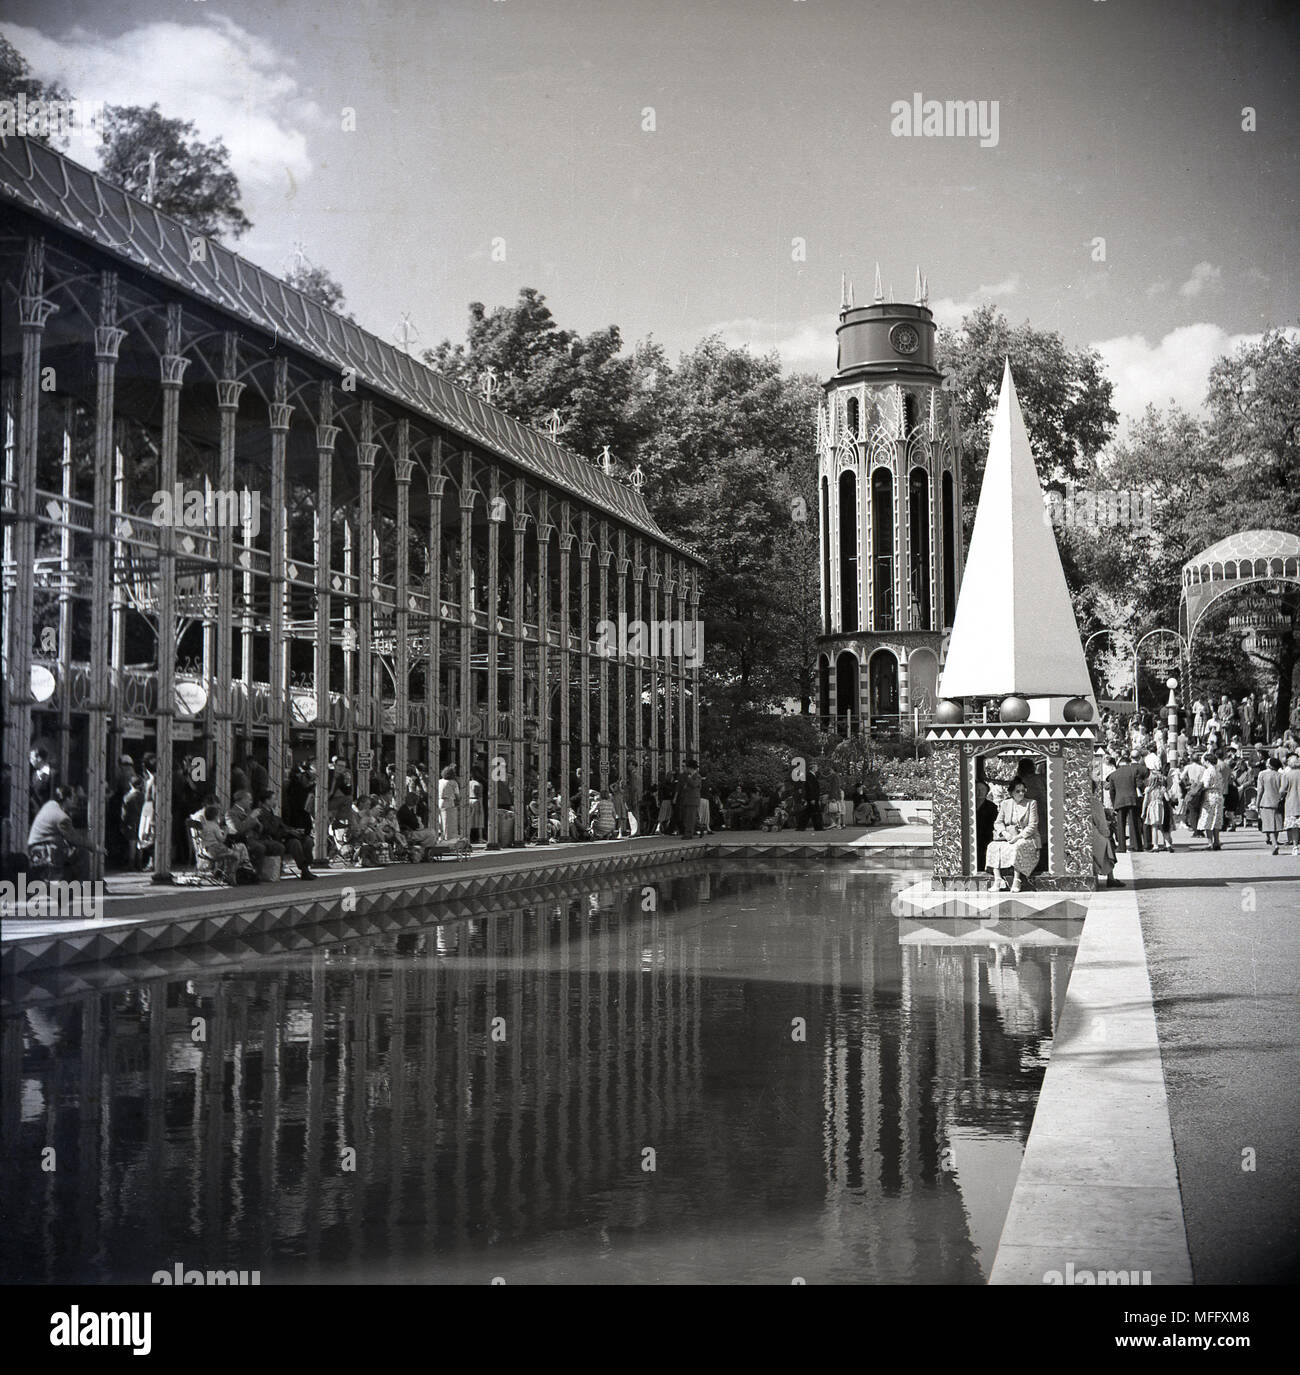 1951, historical, water feature at the Festival of Britain, Battersea Park, London, England, UK. The idea behind the festival was celebrating British industry, arts and science and inspiring the thought of a better Britain following the harshness of the post-ww2 era. - Stock Image